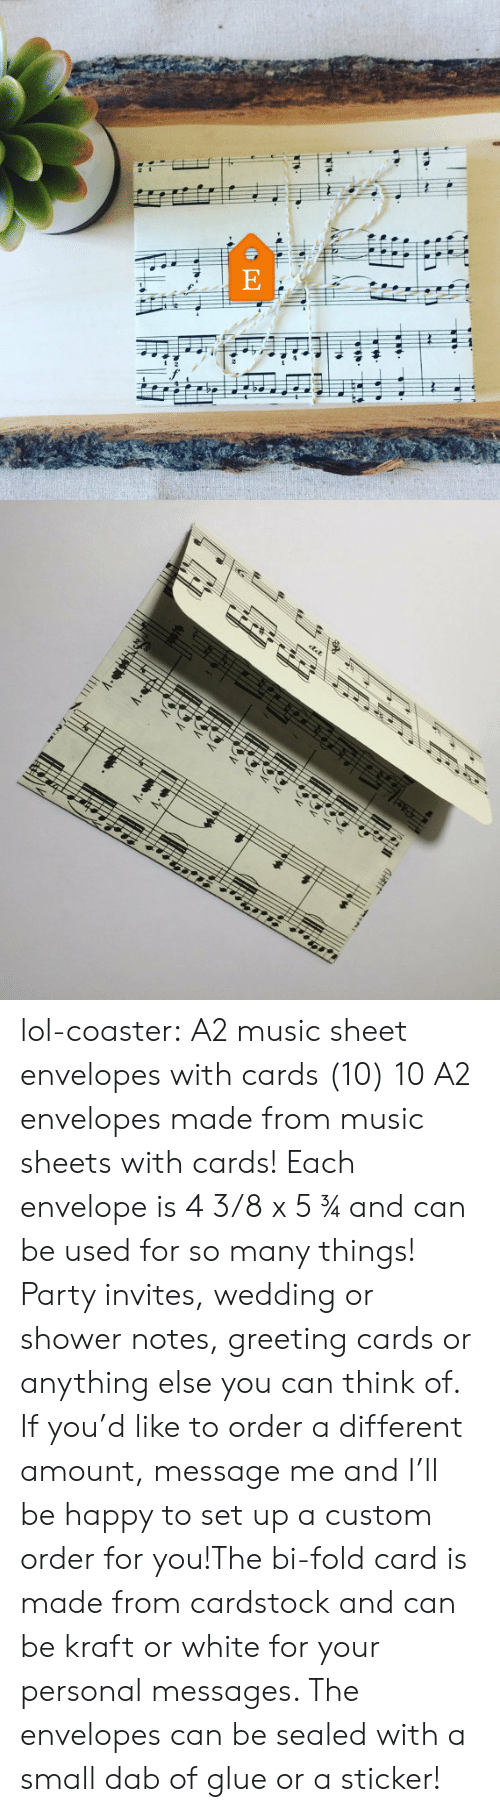 Lol, Music, and Party: lol-coaster:   A2 music sheet envelopes with cards (10)    10 A2 envelopes made from music sheets with cards! Each envelope is 4 3/8 x 5 ¾ and can be used for so many things! Party invites, wedding or shower notes, greeting cards or anything else you can think of. If you'd like to order a different amount, message me and I'll be happy to set up a custom order for you!The bi-fold card is made from cardstock and can be kraft or white for your personal messages. The envelopes can be sealed with a small dab of glue or a sticker!